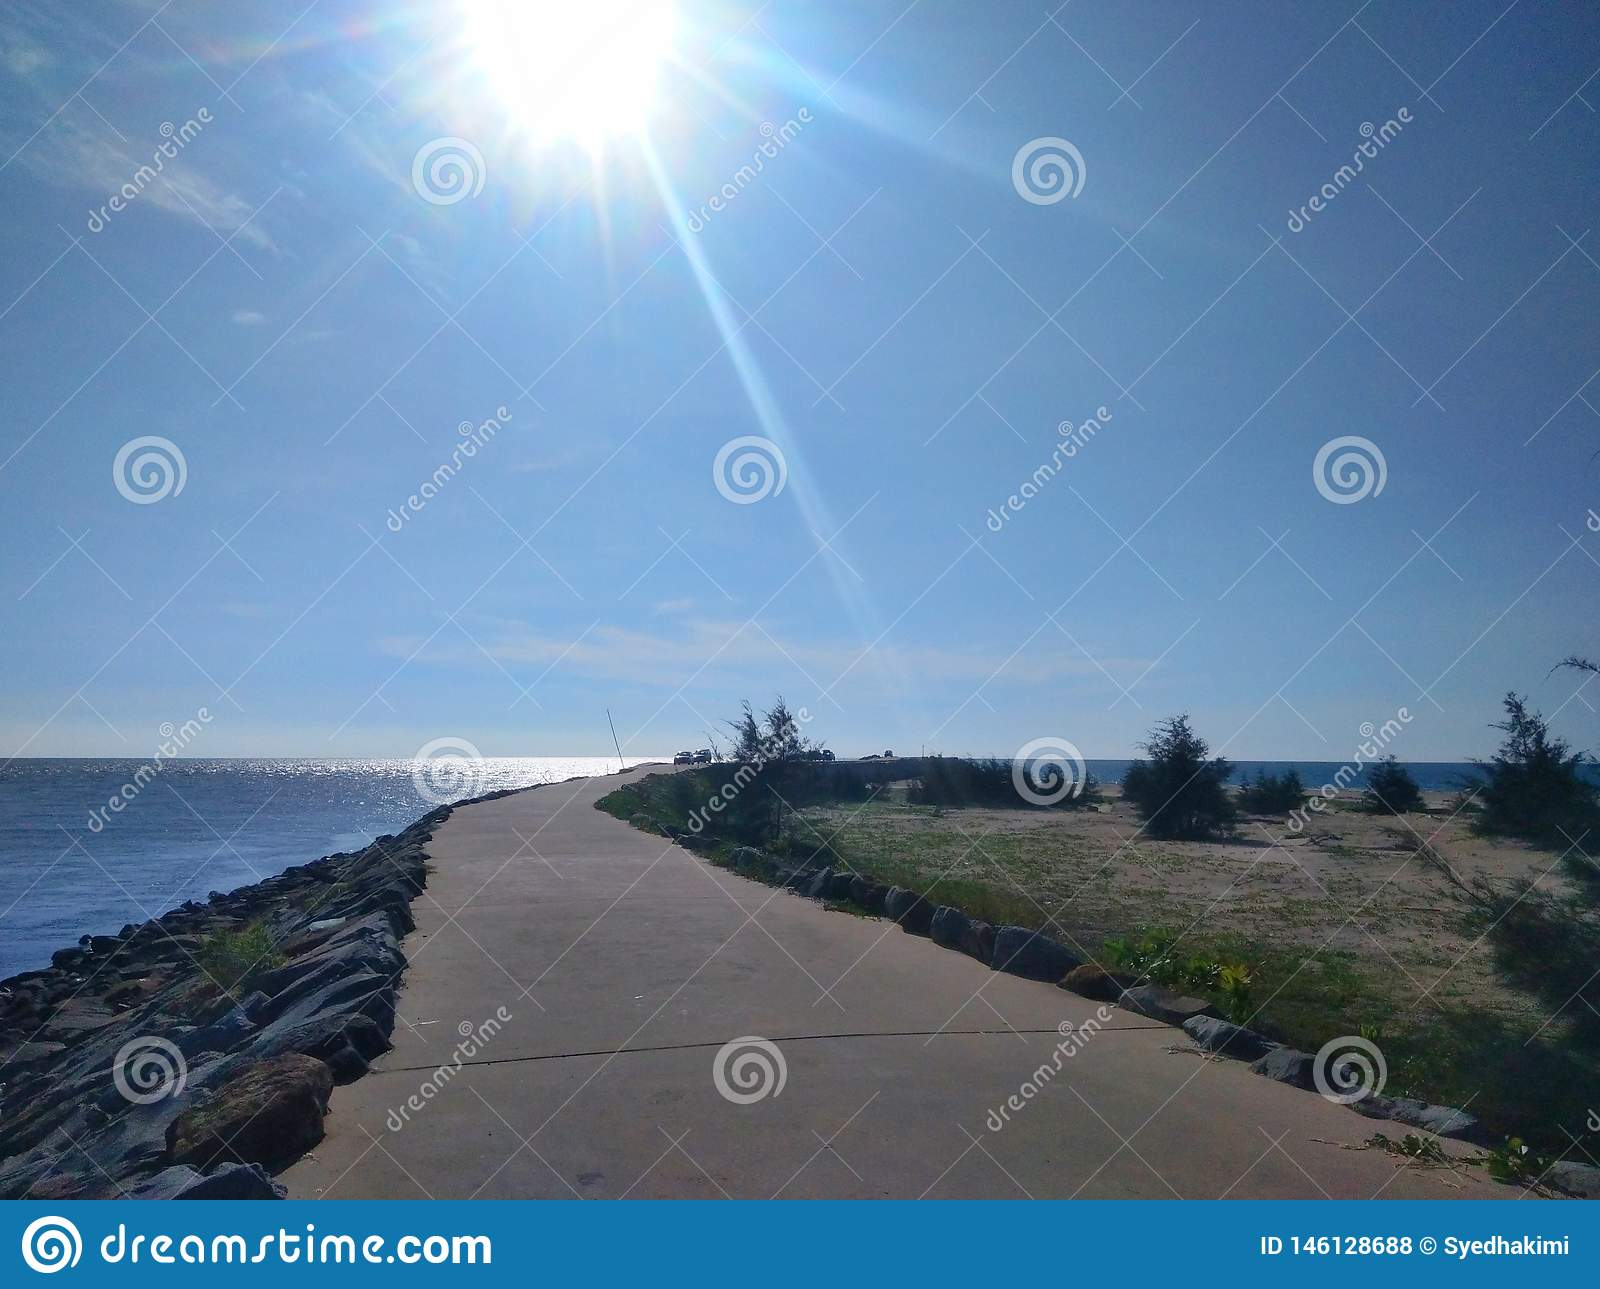 Pathway to pier and ocean view with wave breaker stone -image